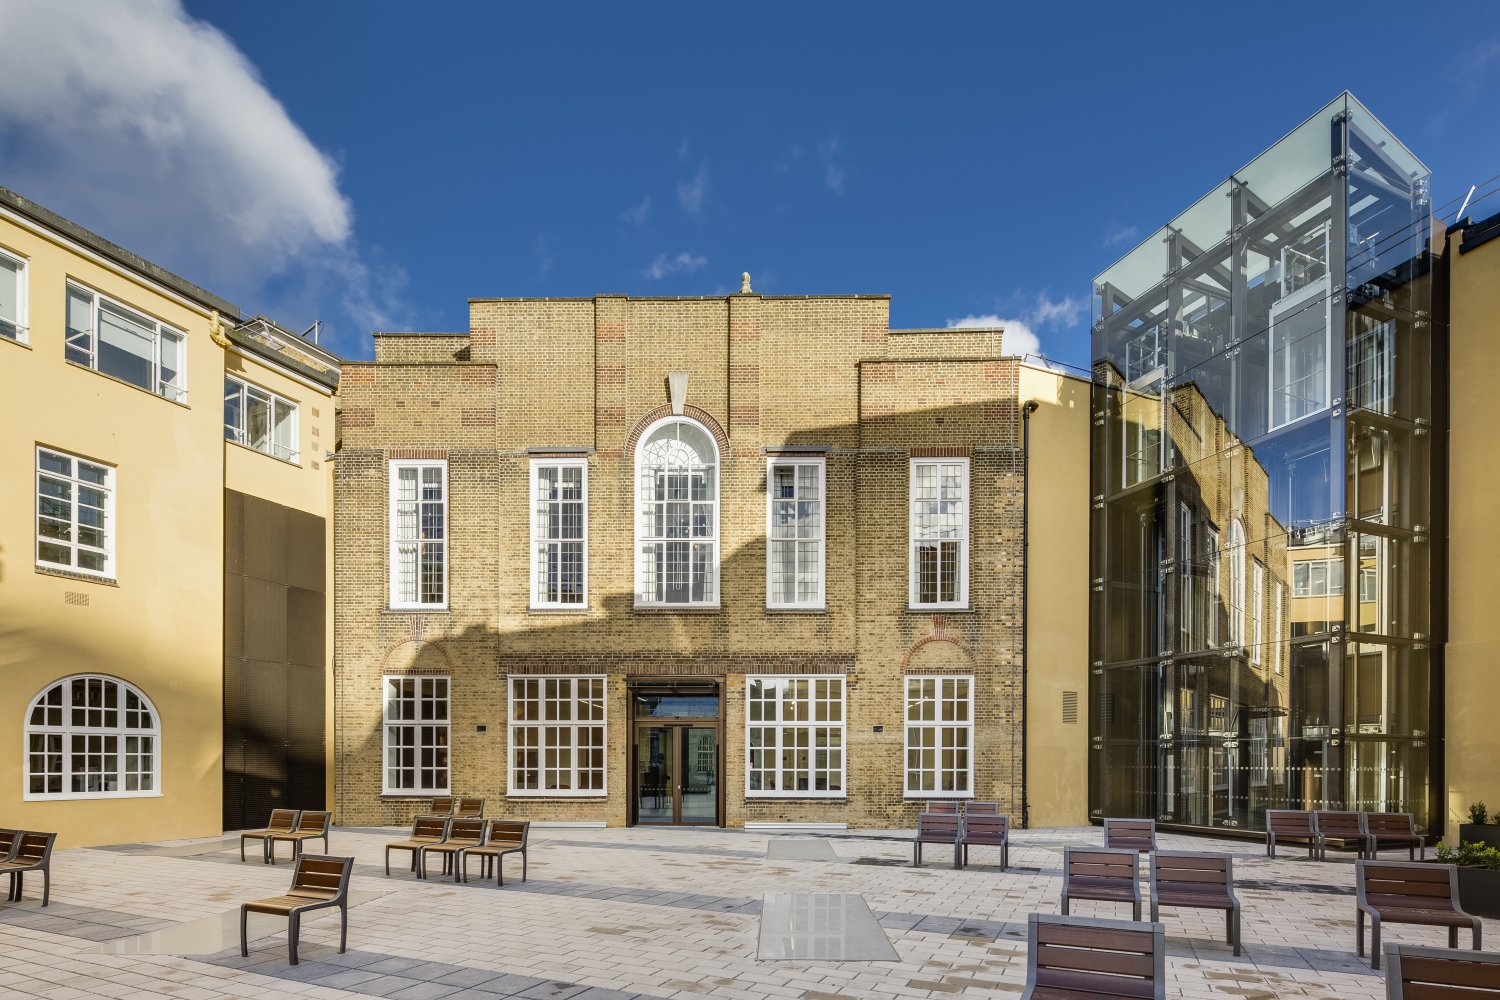 The rear of the Lambeth Town Hall building, a grade two listed building with a glass atrium added